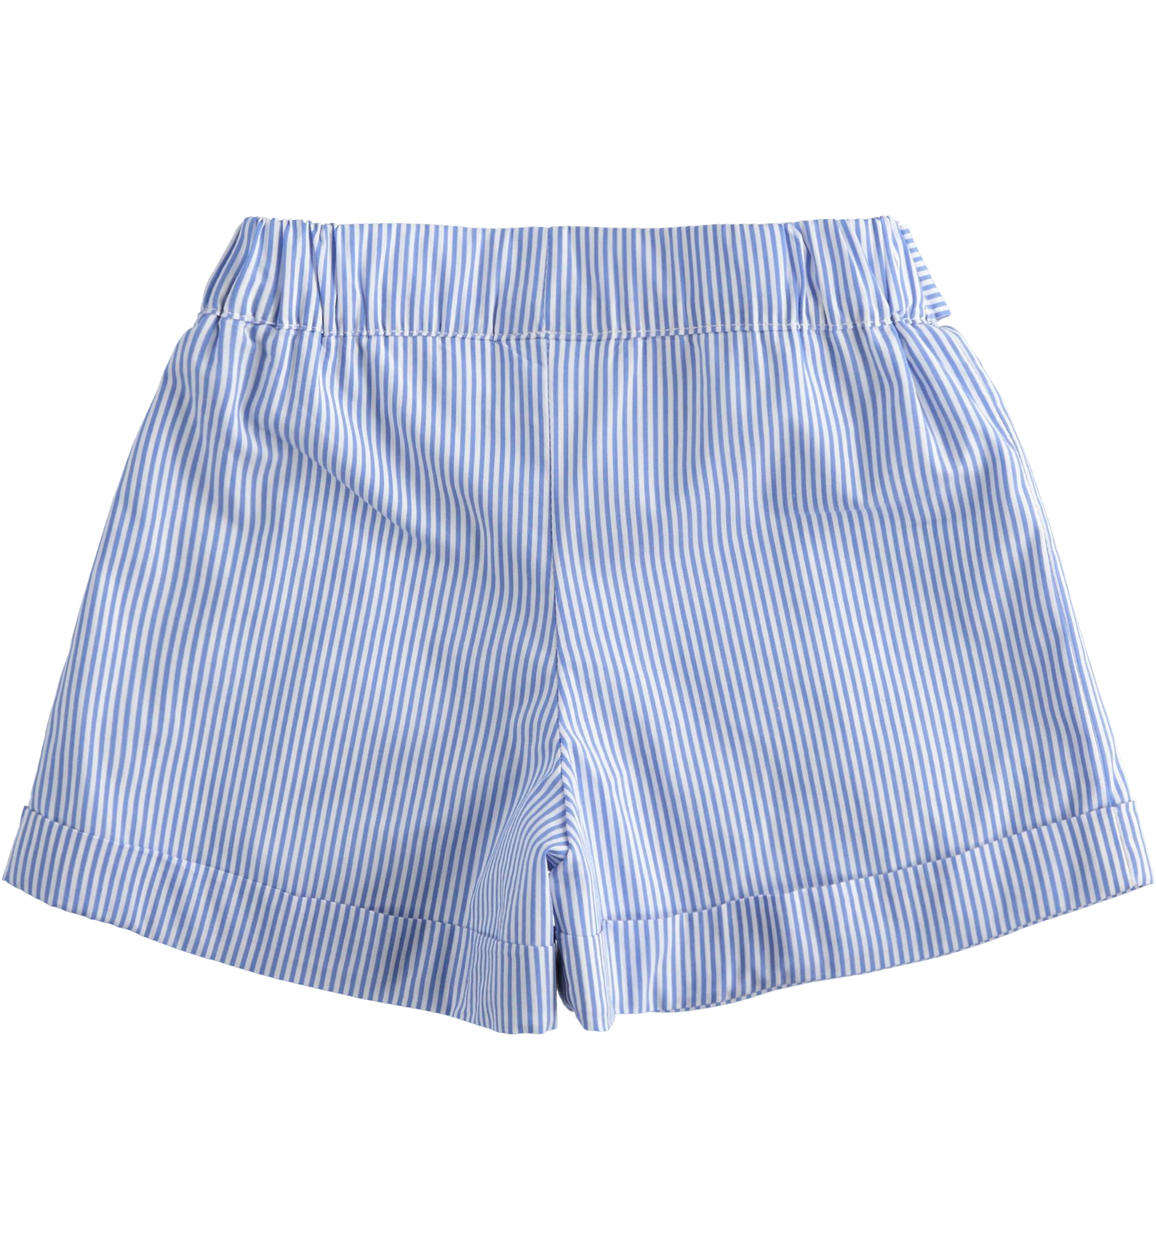 shorts in tessuto misto cotone stretch t avion retro 02 1594j77600 3616 150x150